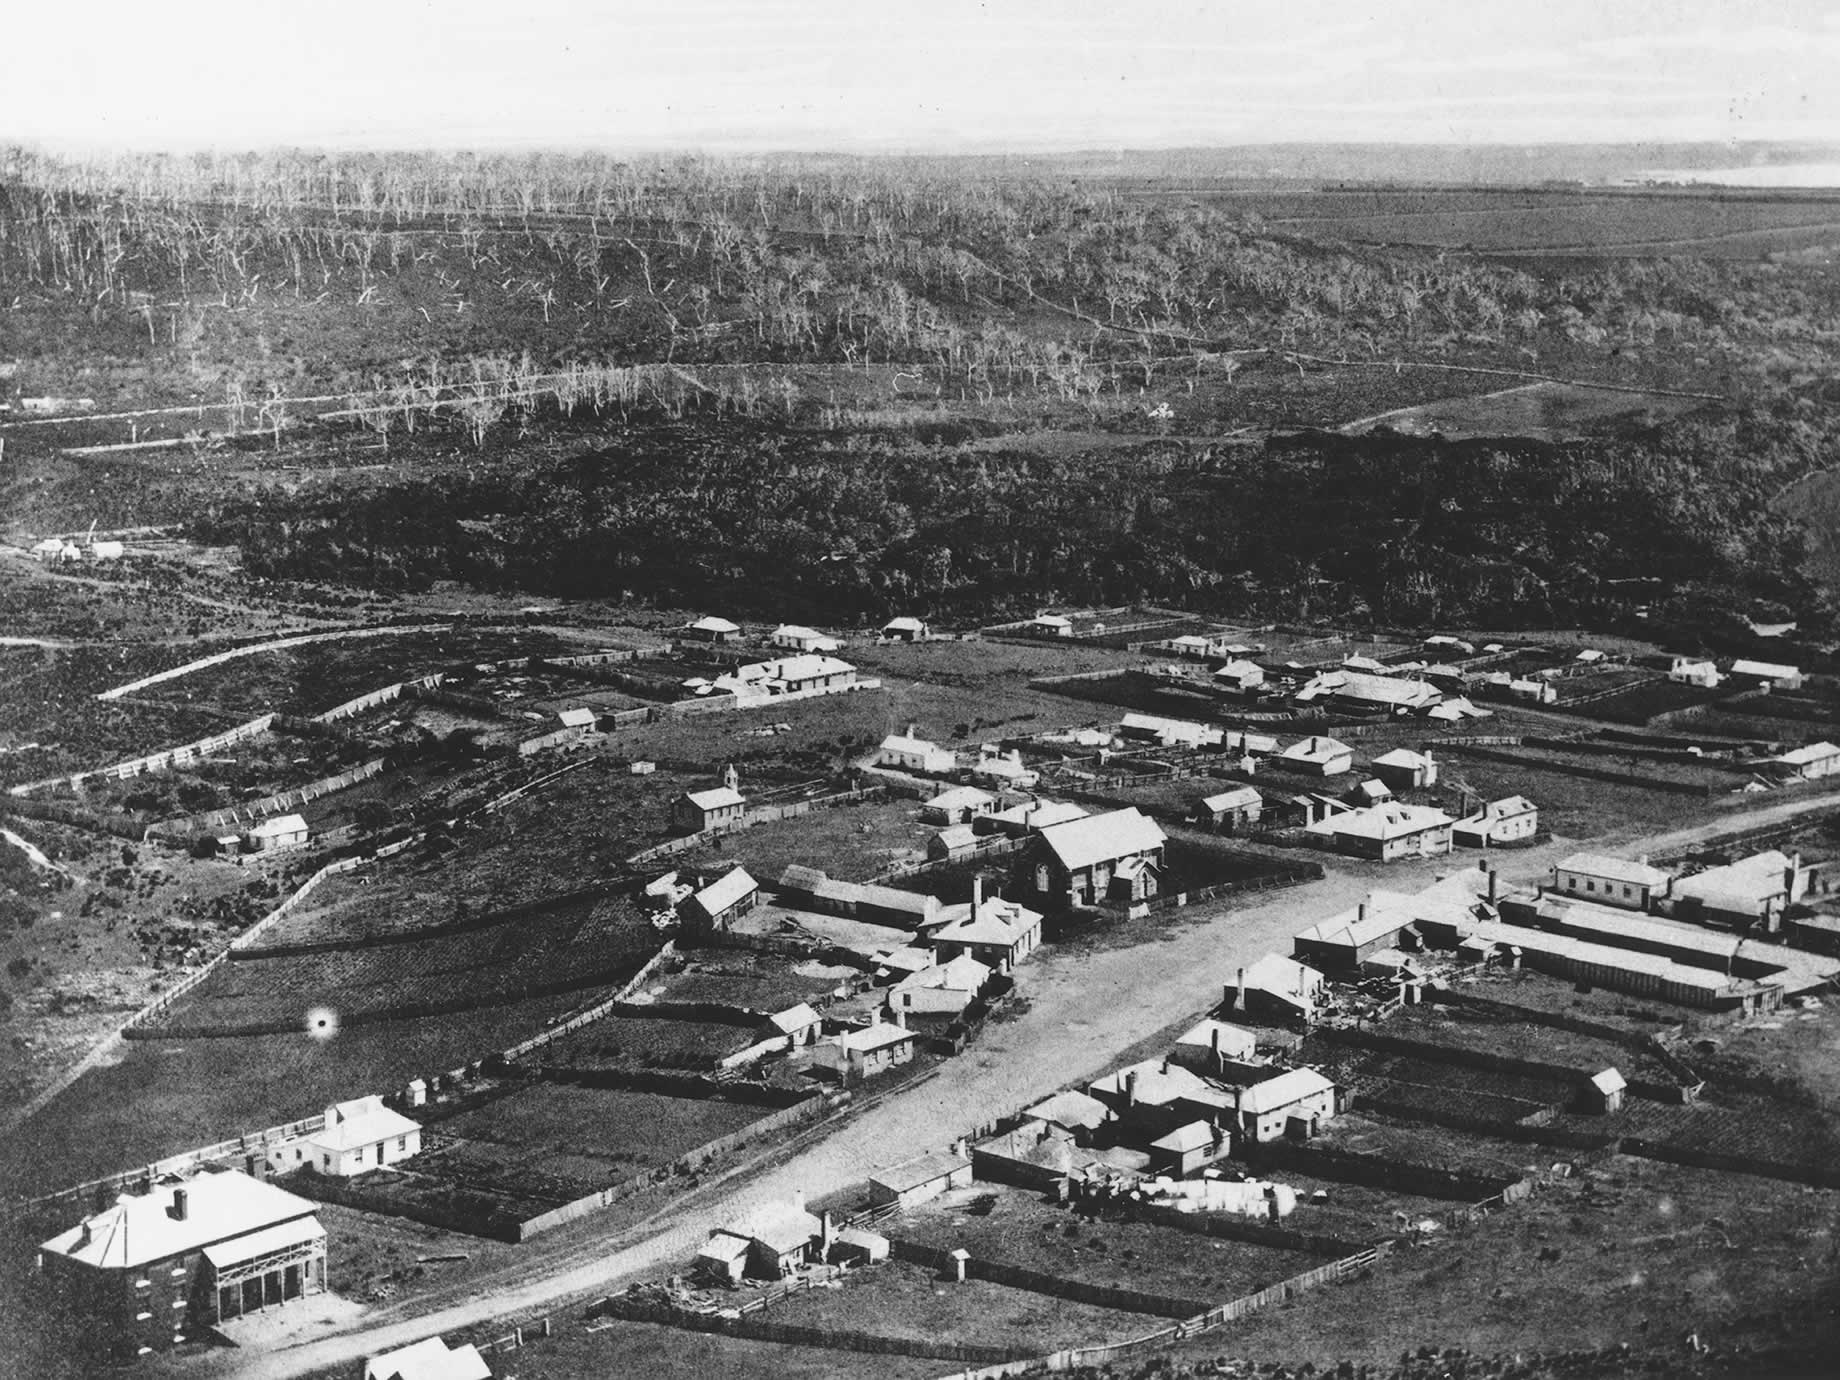 The township of Stanley in 1858, taken by Fred Frith